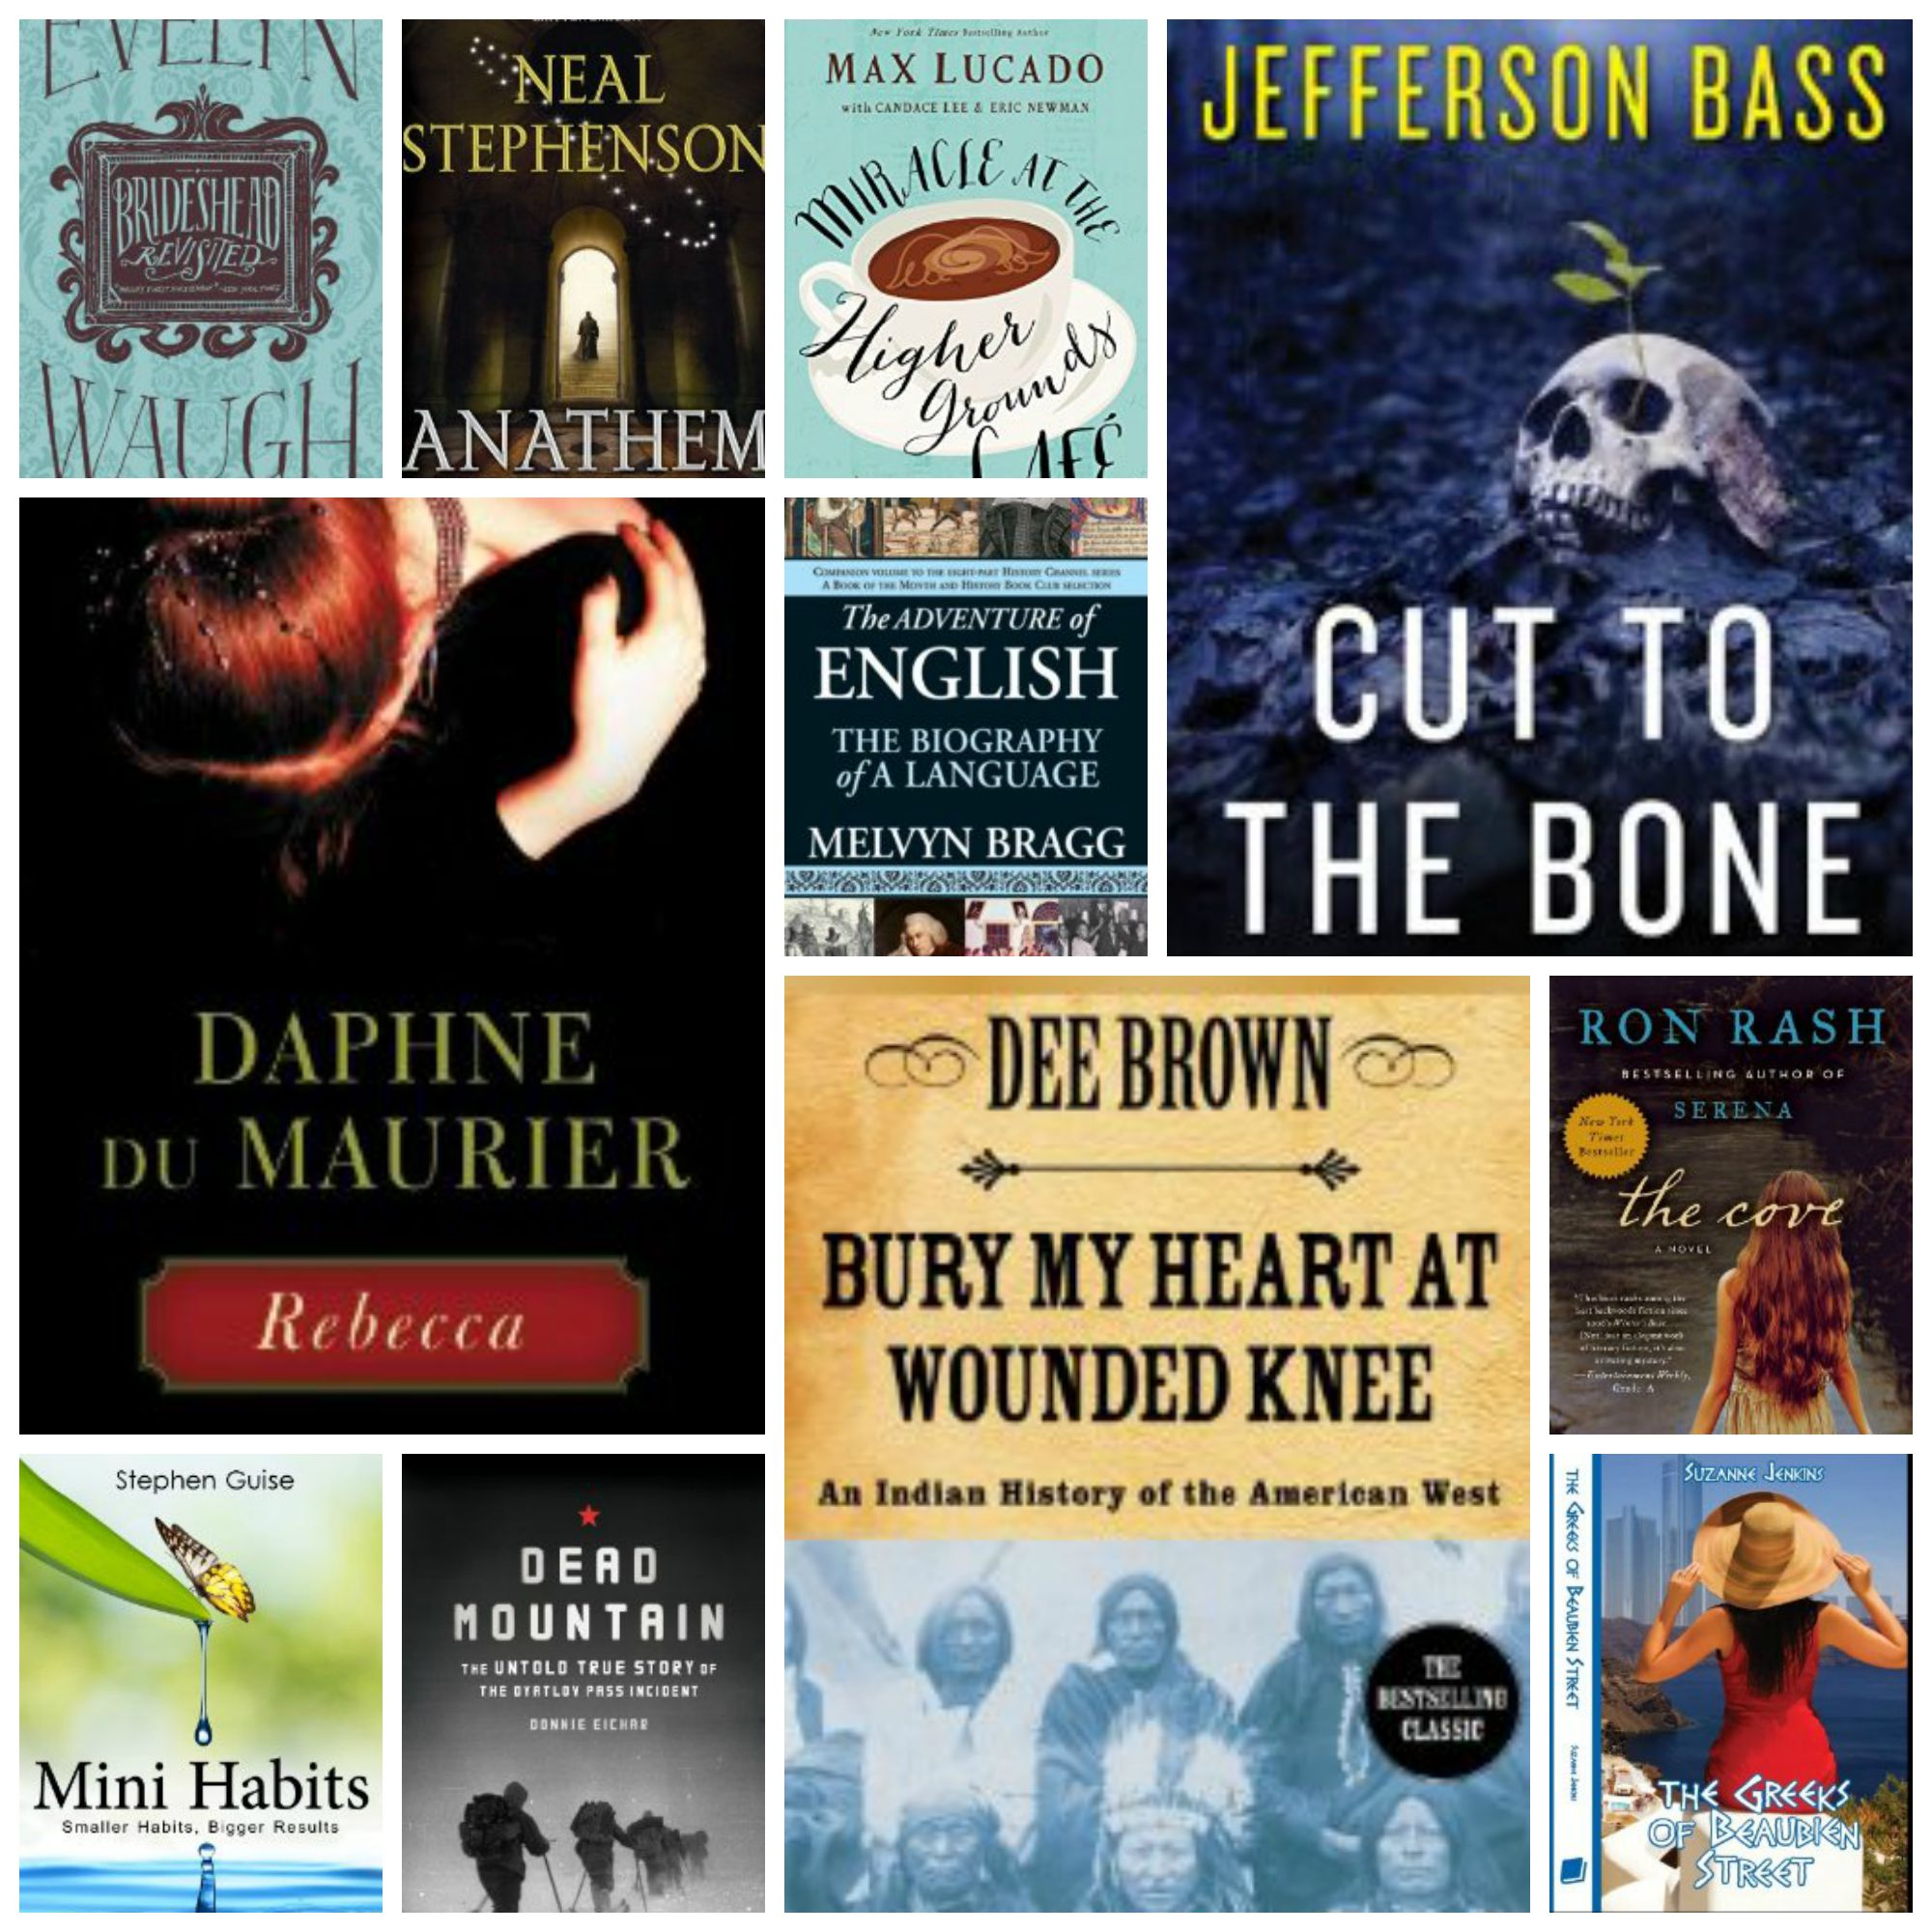 BookGorilla Email Alert for 9/29/15